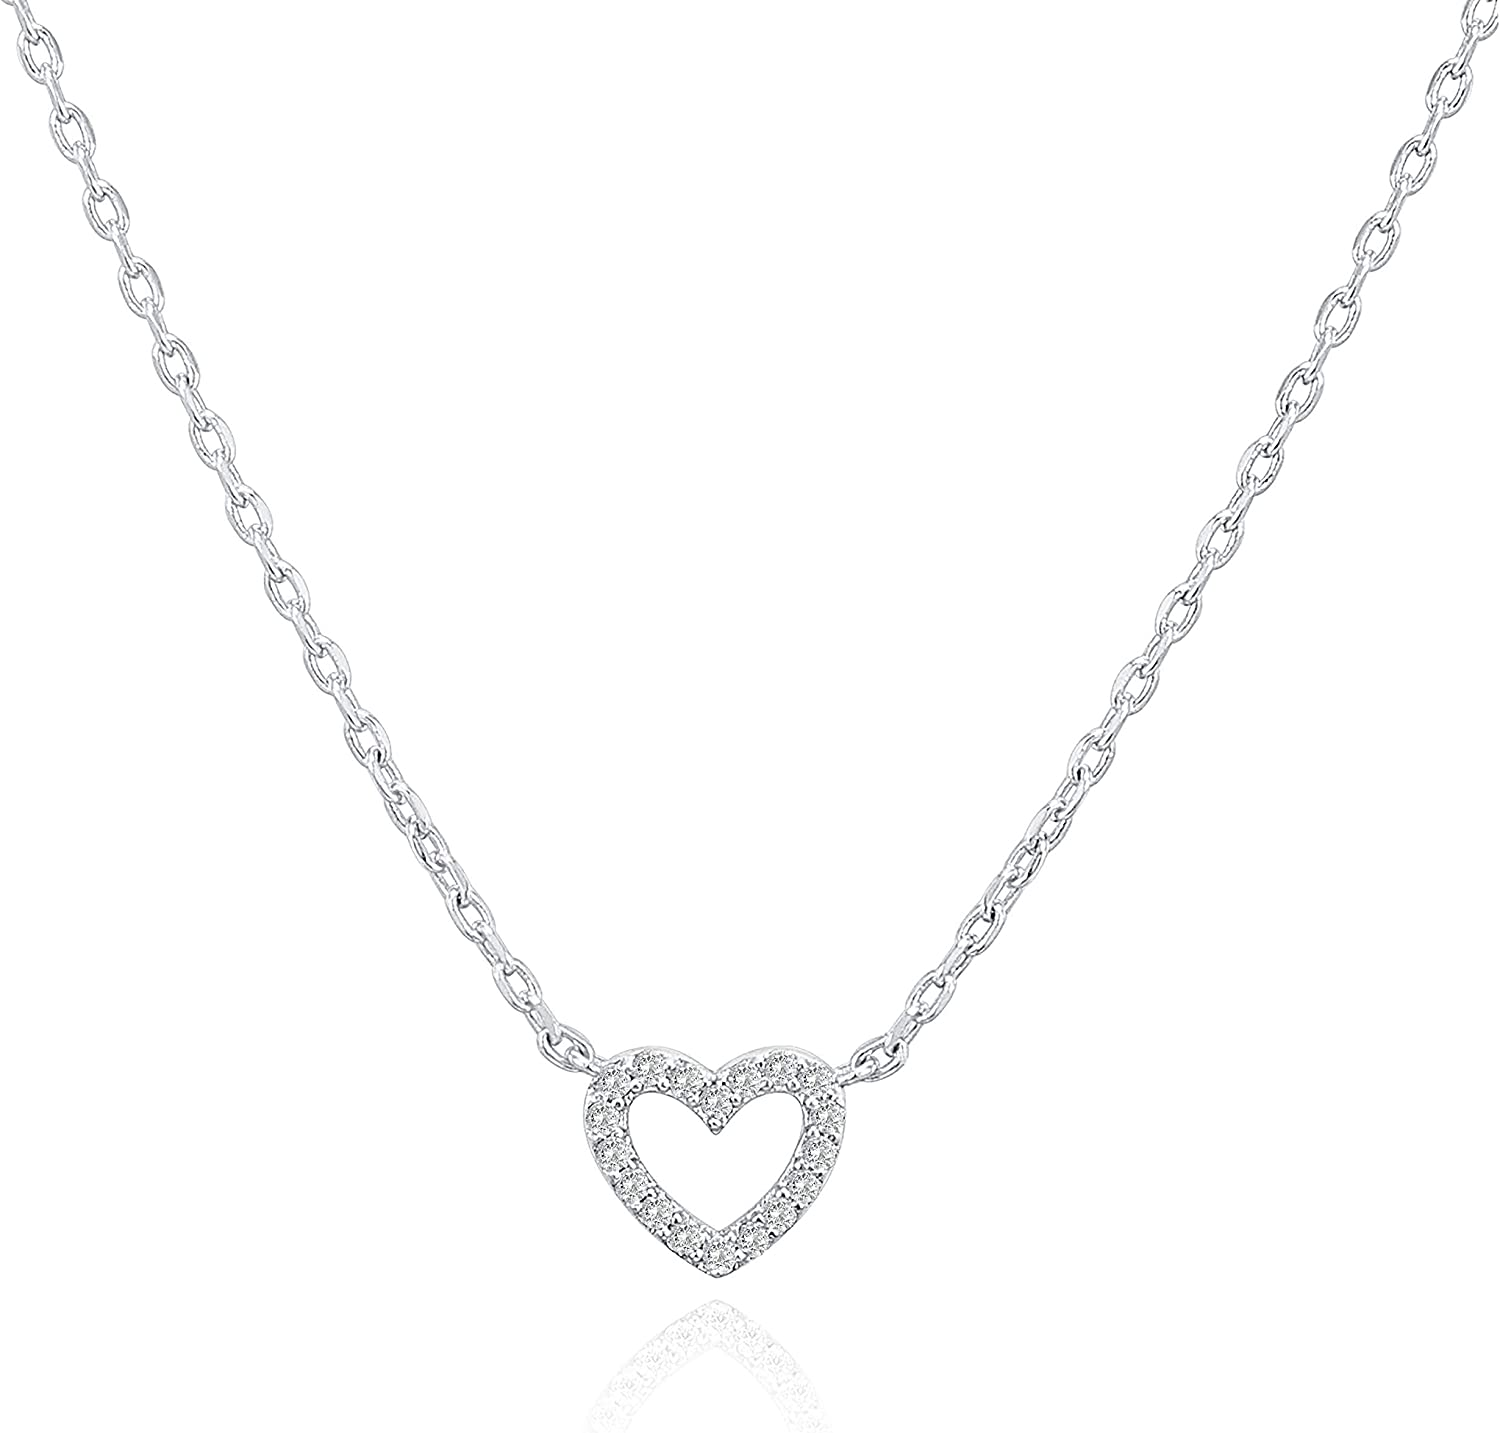 PAVOI 14K Gold Plated Dainty Pendant Necklace | Heart, Dot, Halo, Butterfly Pendant | Layering Necklaces | Gold Necklaces for Women